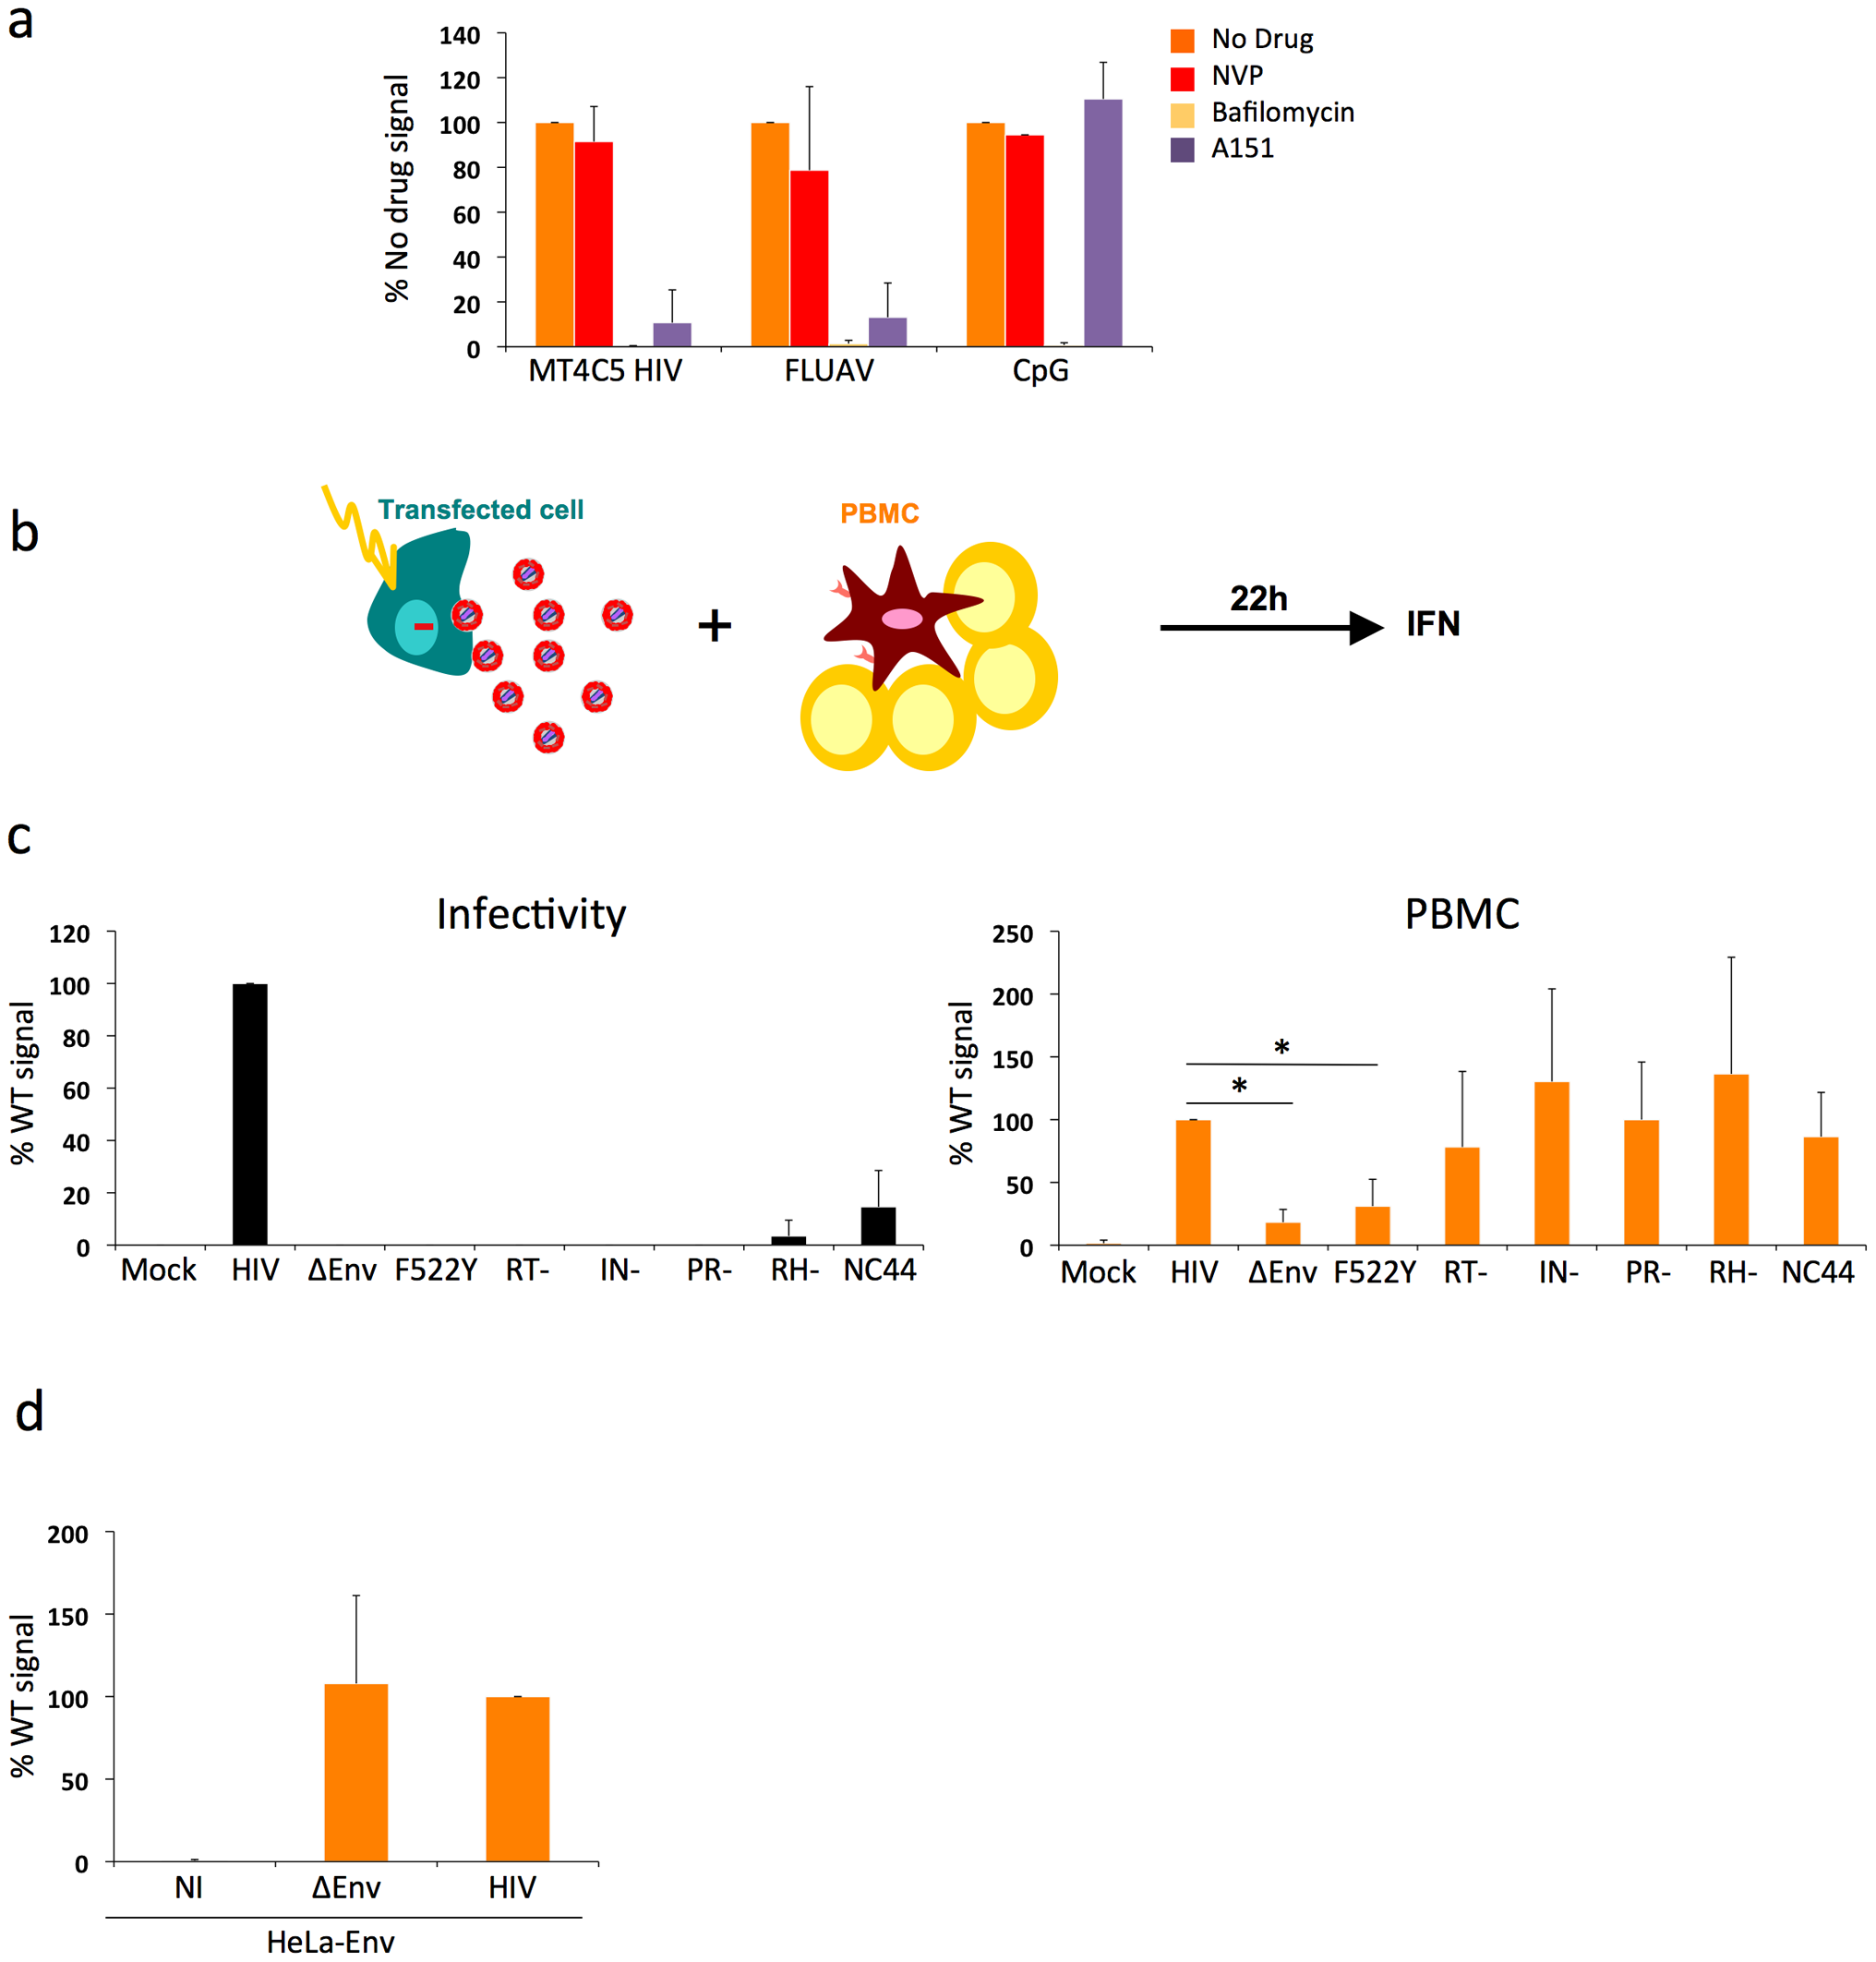 Pathways of recognition of HIV-infected cells by hematopoïetic cells.